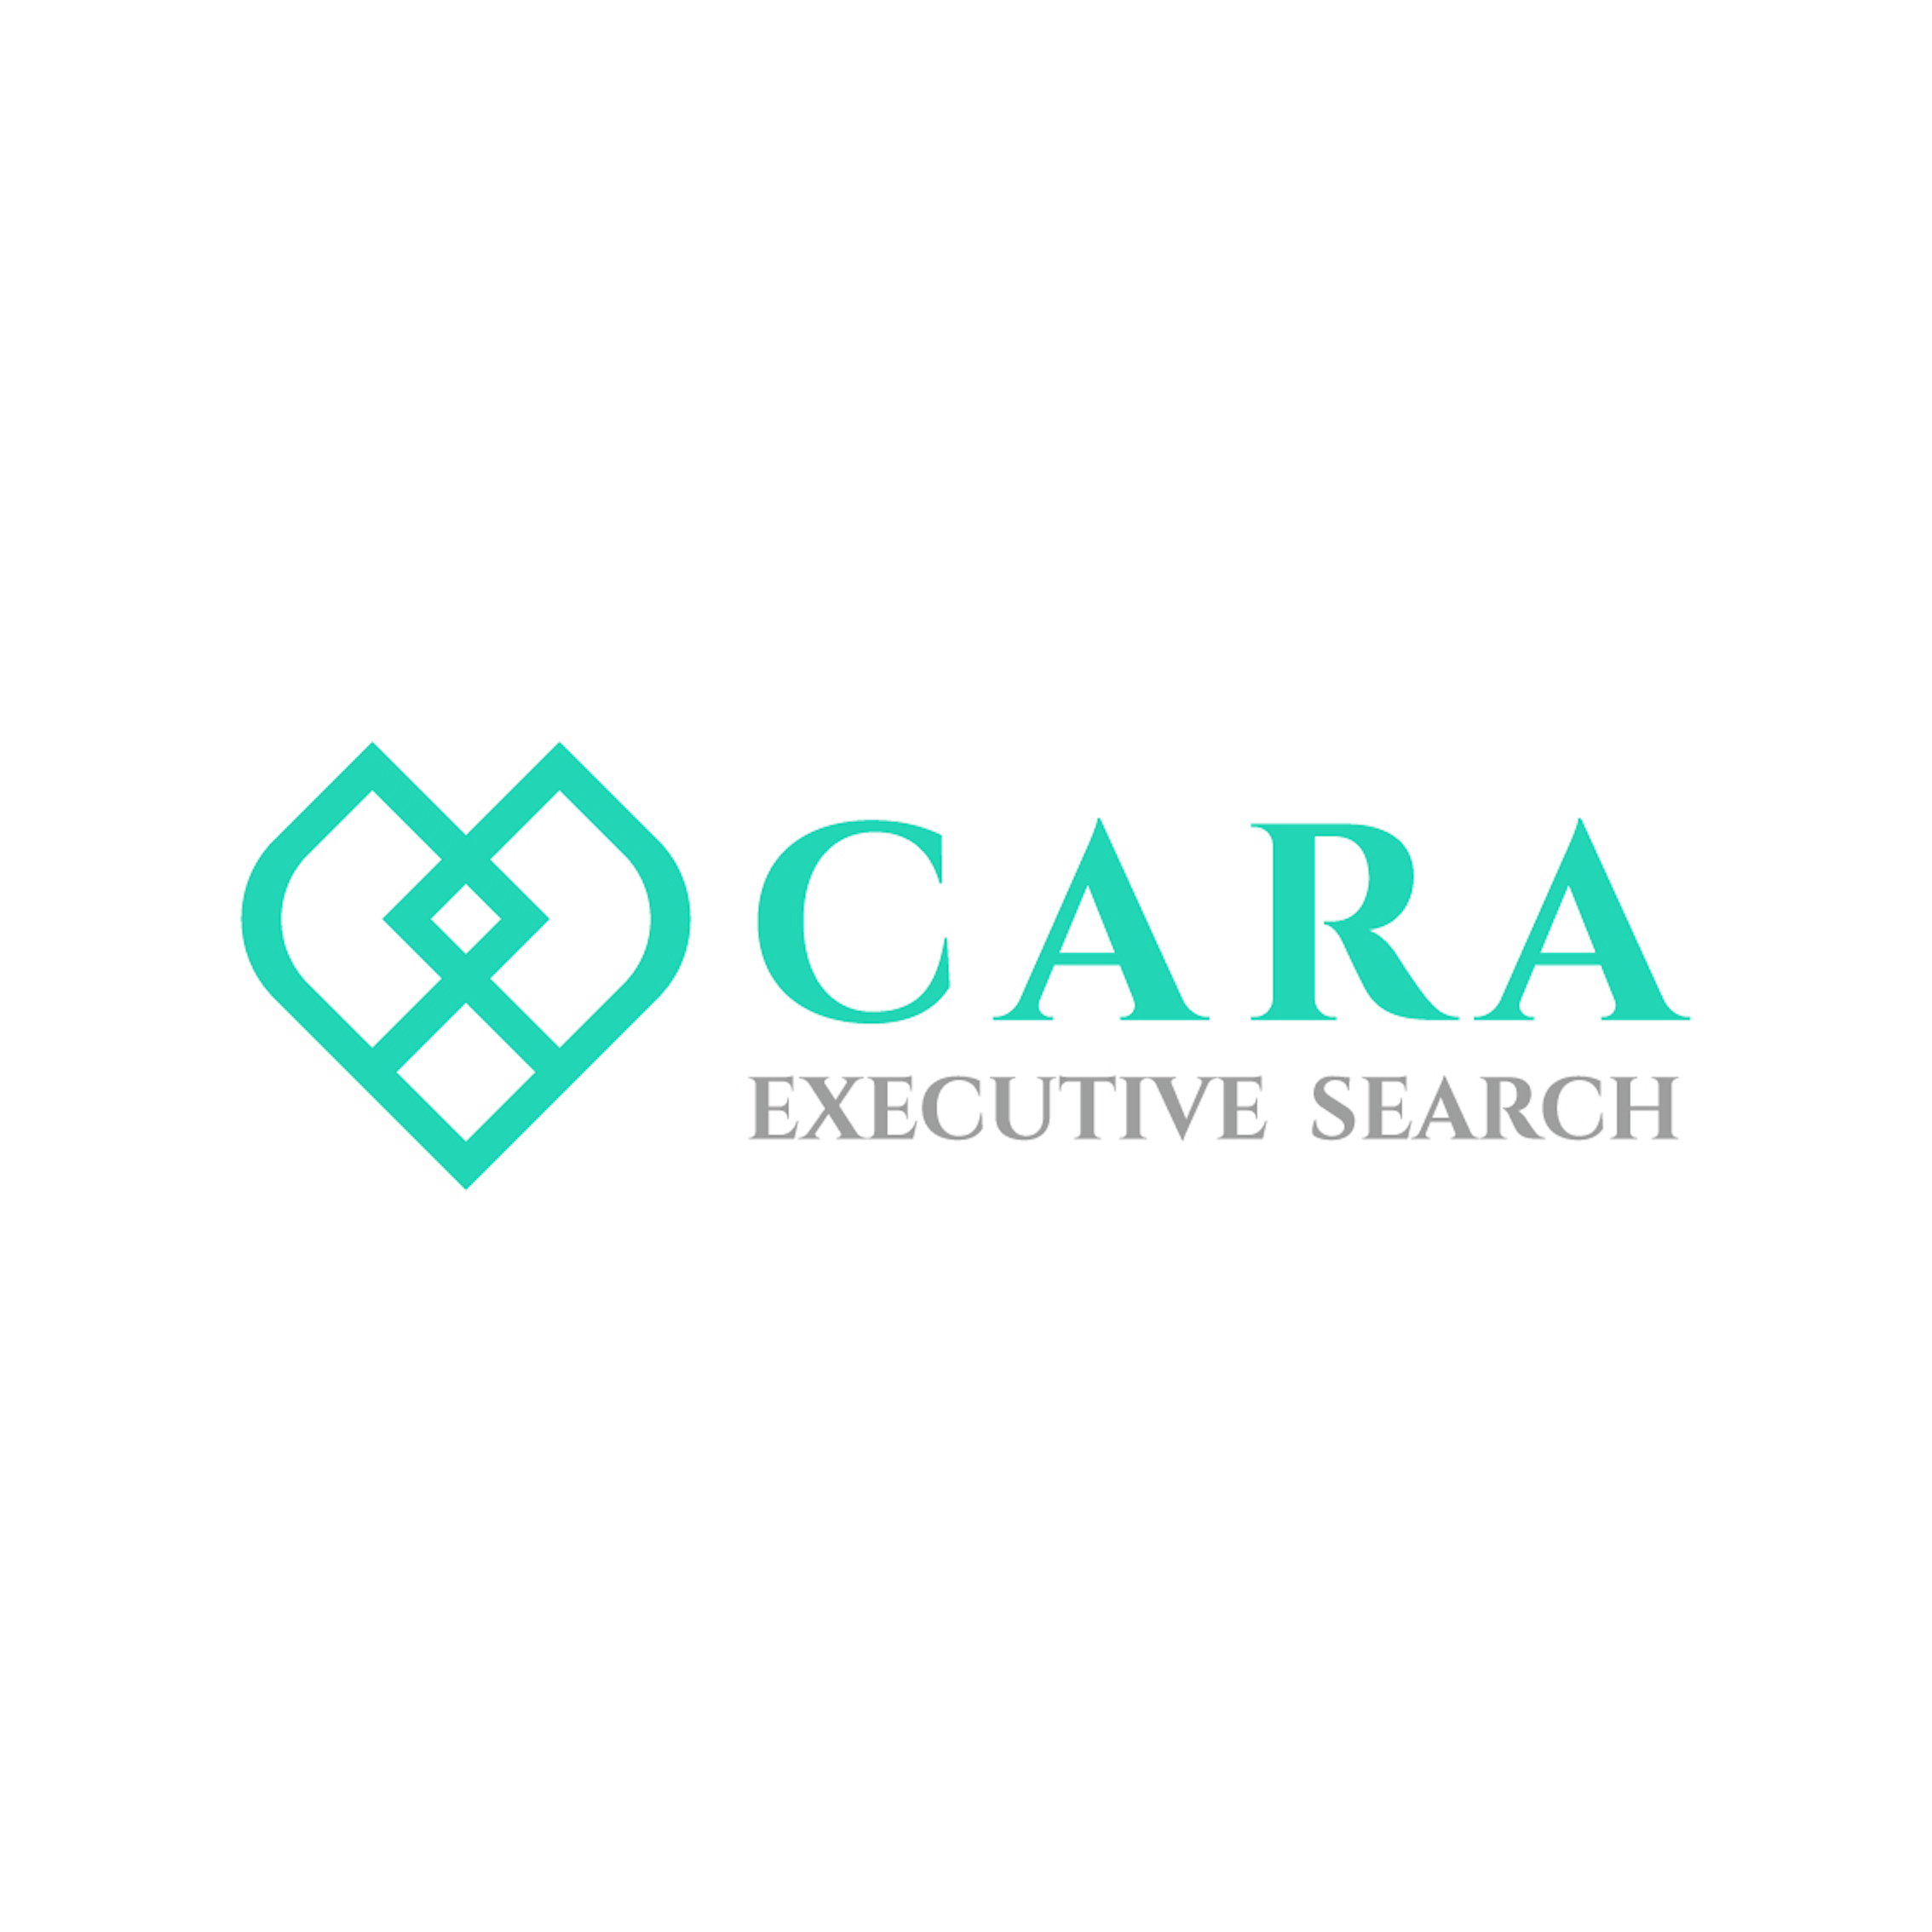 Cara executive search